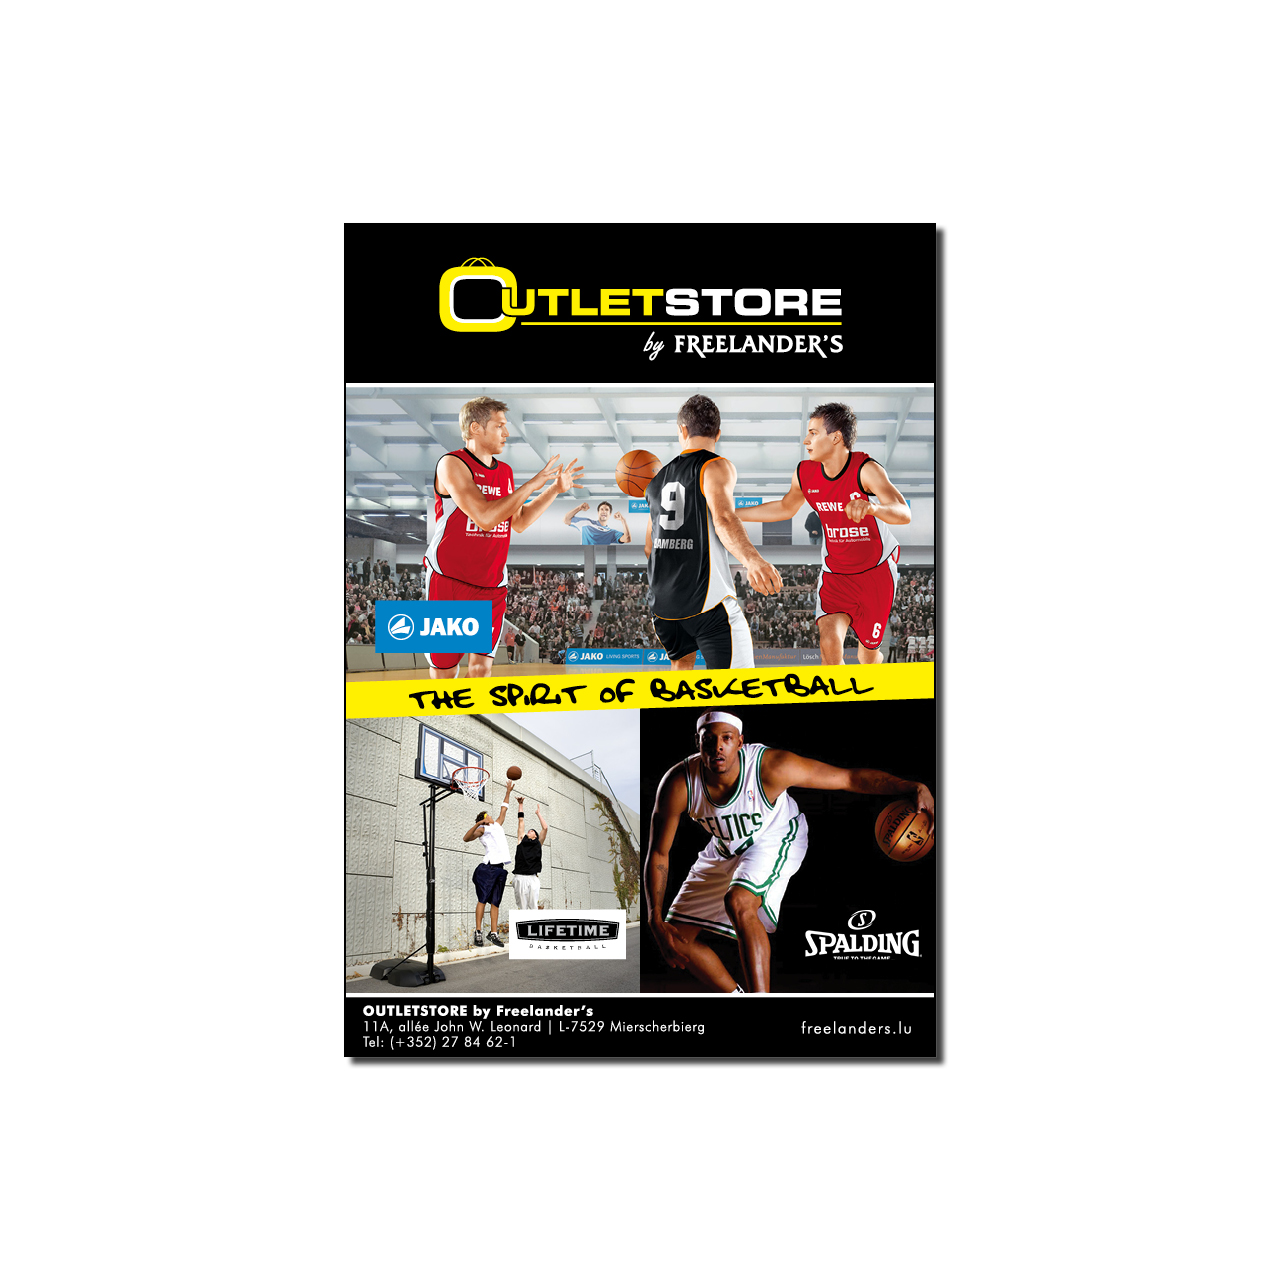 Outletstore